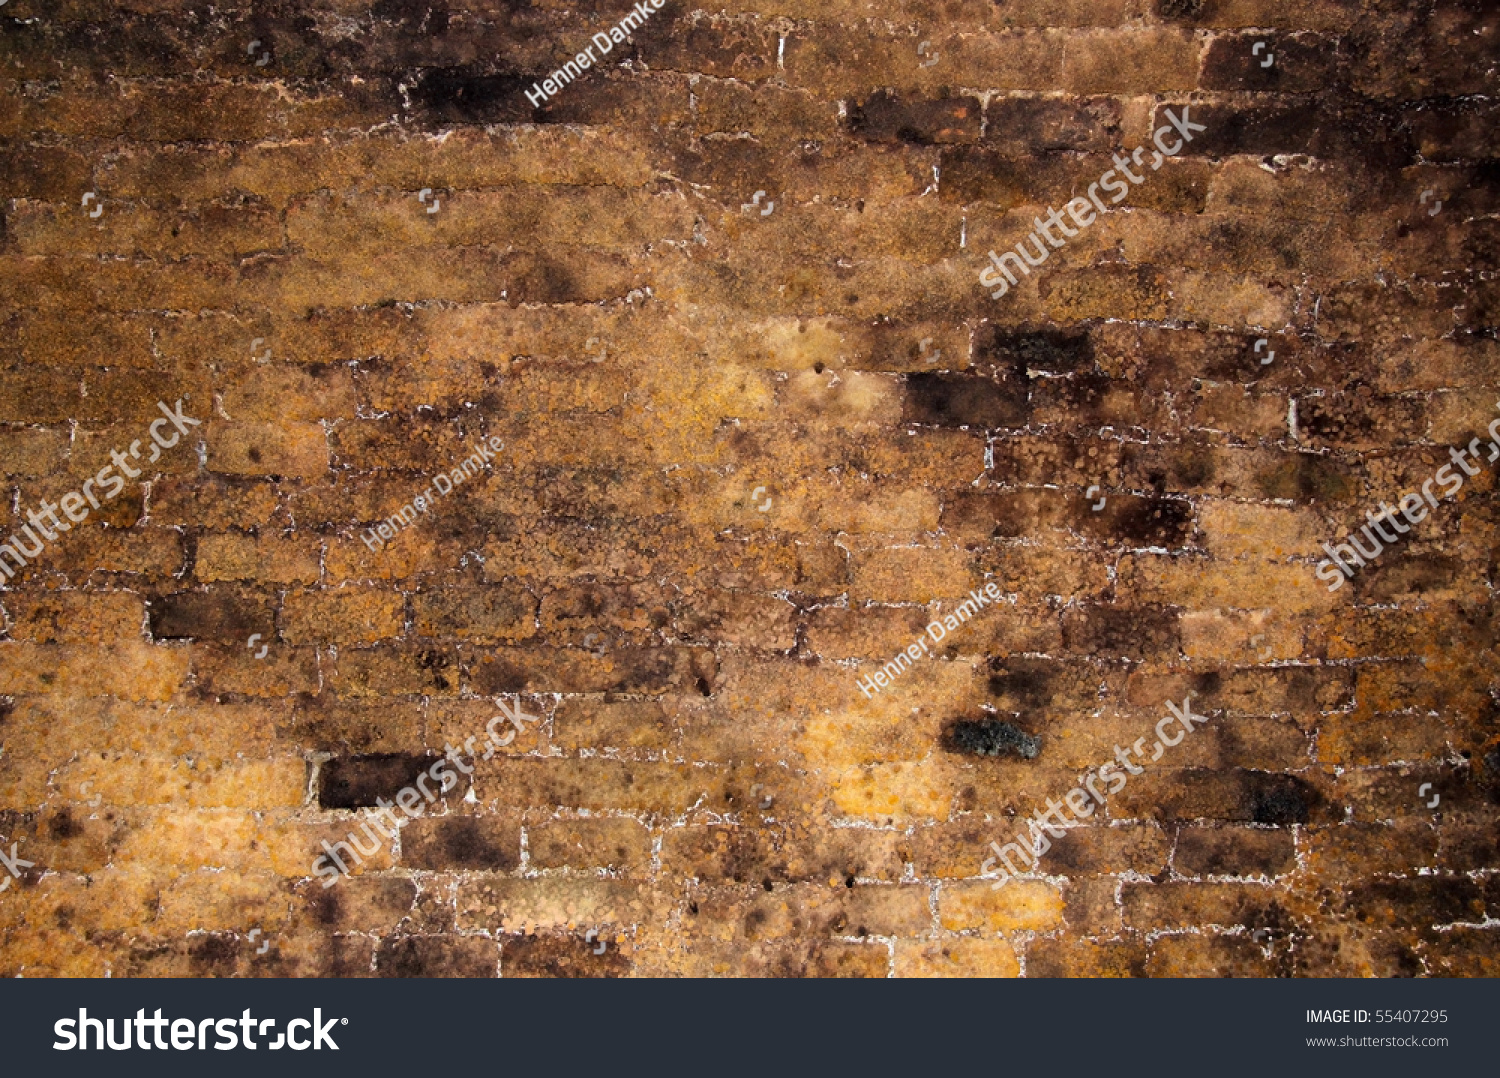 Rustikal background  Brick Wall Inside Old Wine Cellar Stock Photo 55407295 - Shutterstock